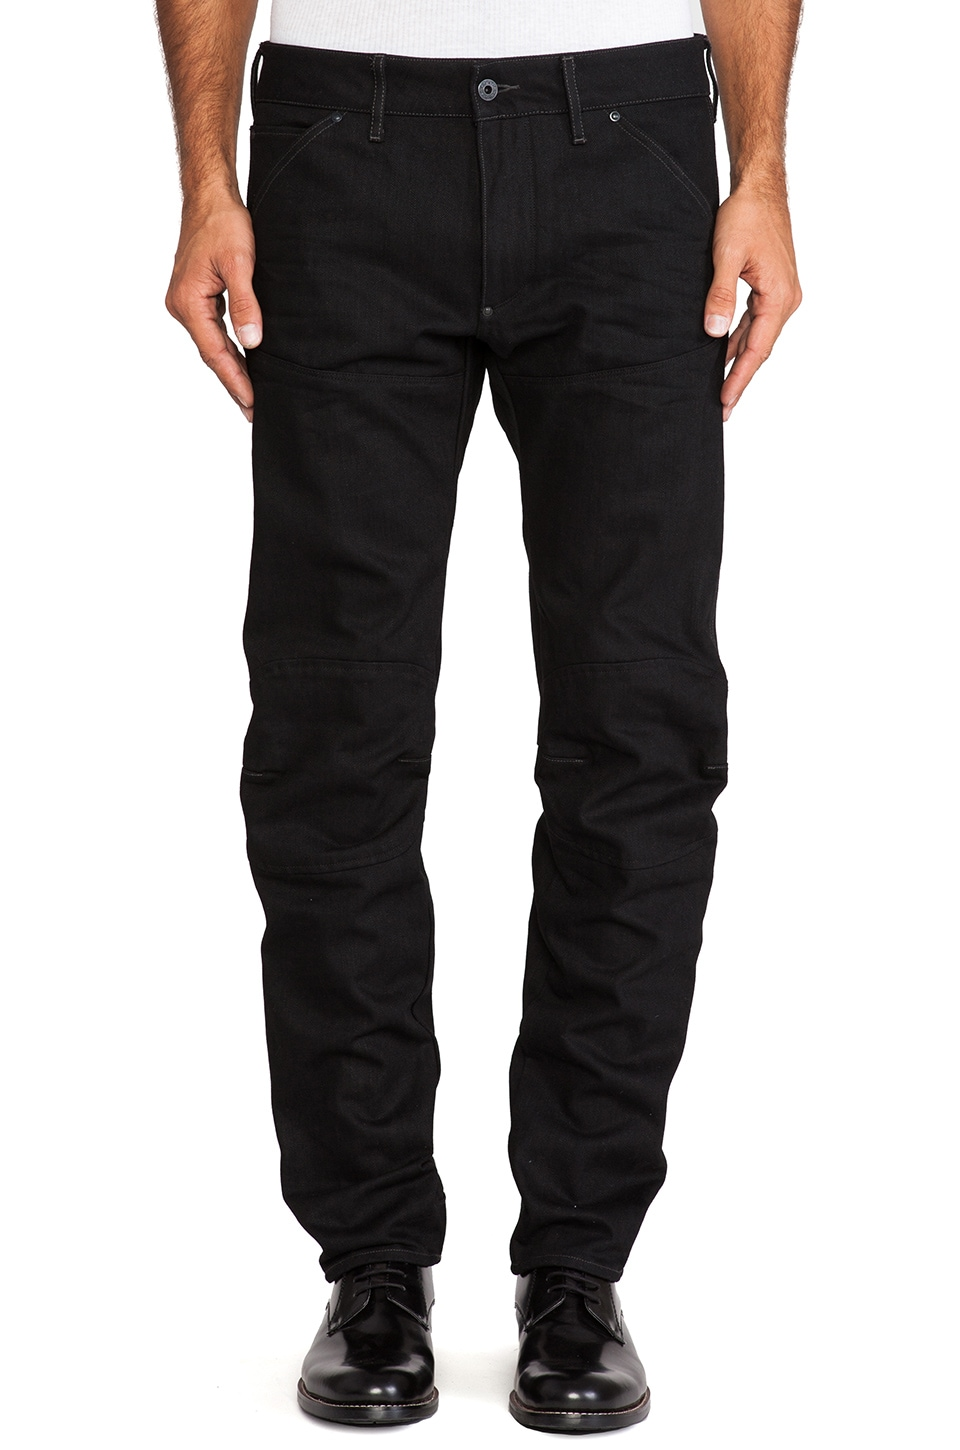 G-Star 5620 3D Low Tapered Black Drig Denim in 3D Raw